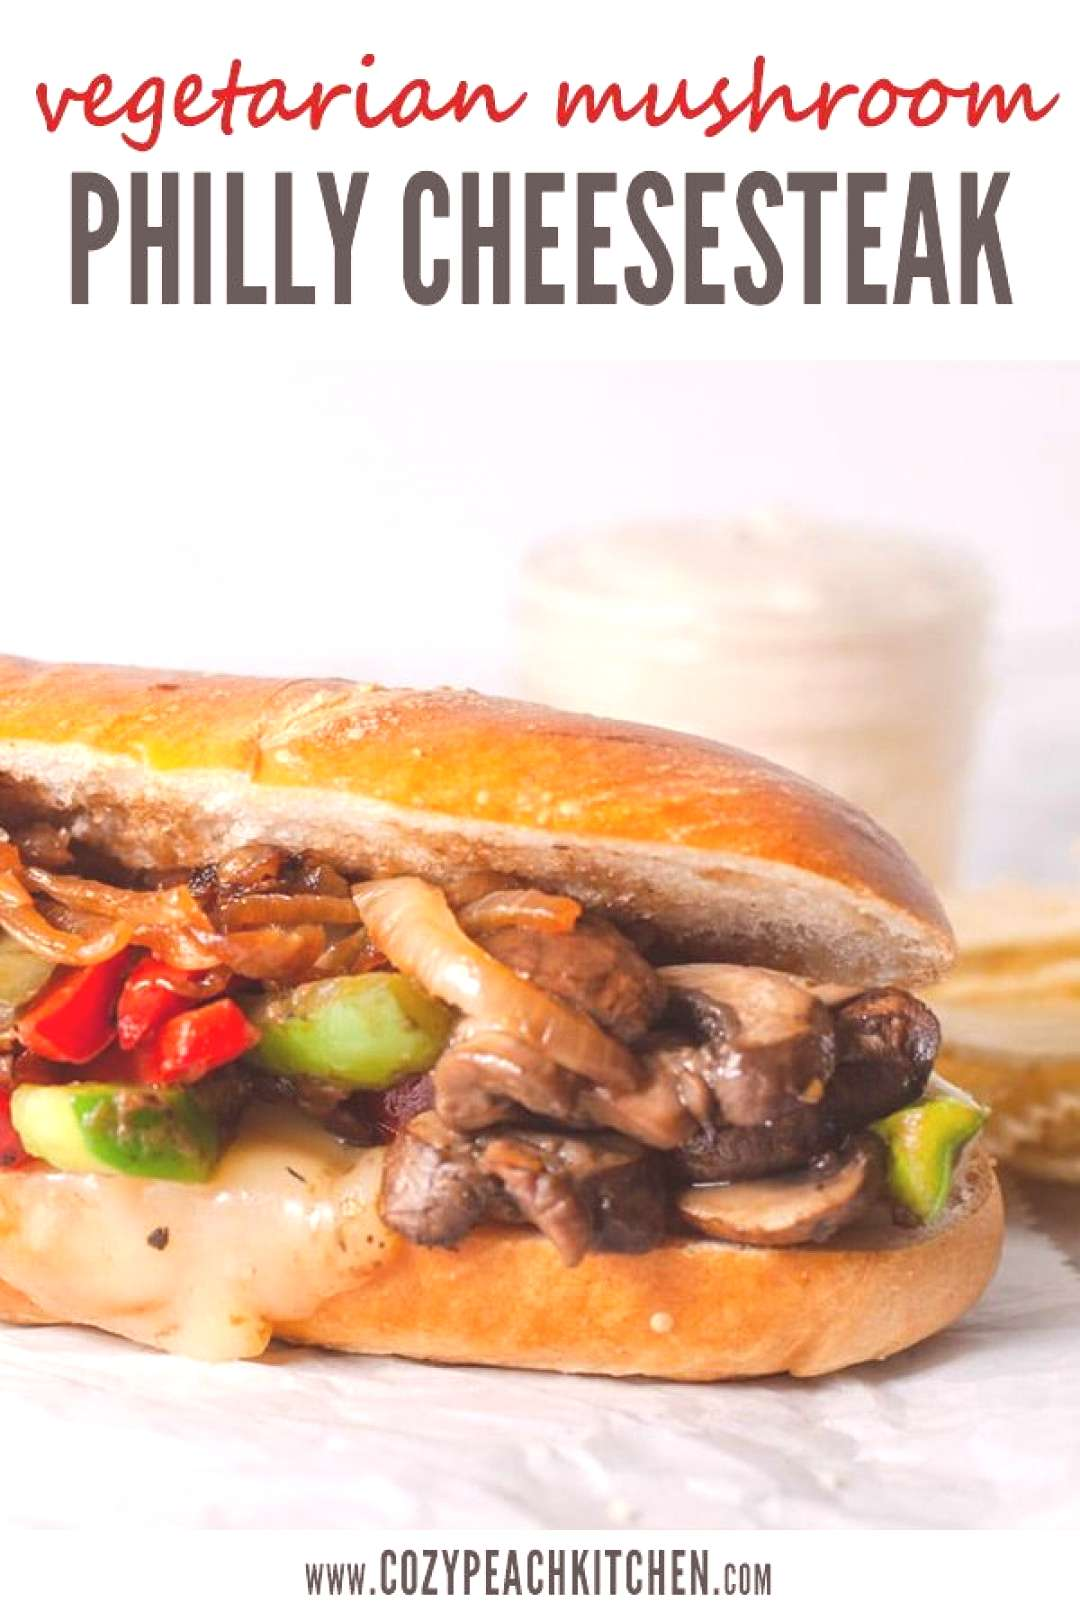 Vegetarian Mushroom Philly Cheesesteak with Caramelized Onions - -